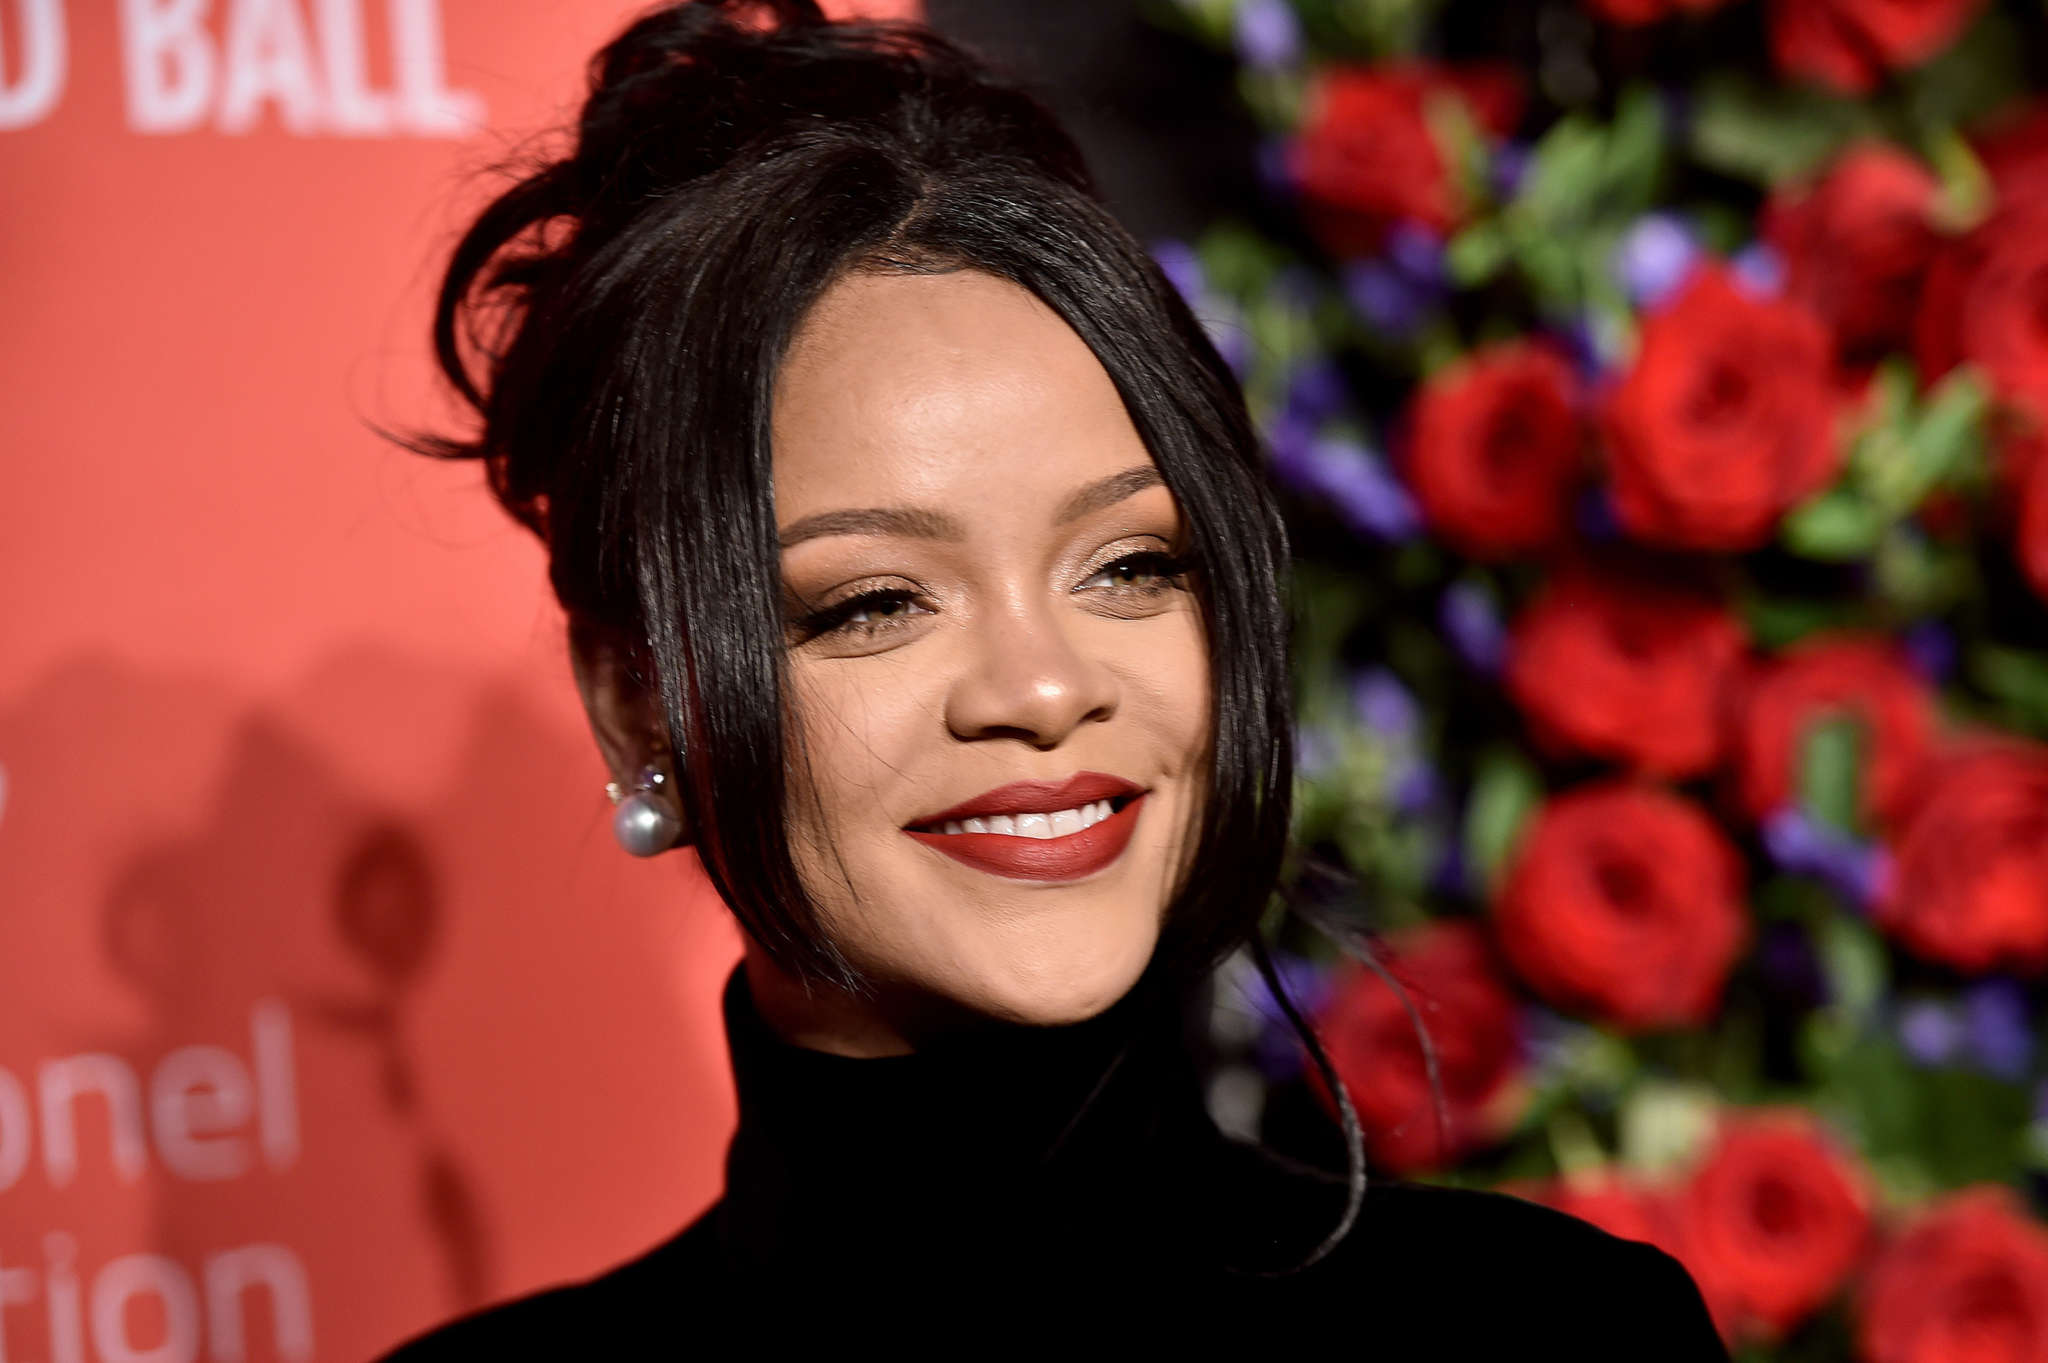 Rihanna Just Signed A Publishing Deal With Sony Records